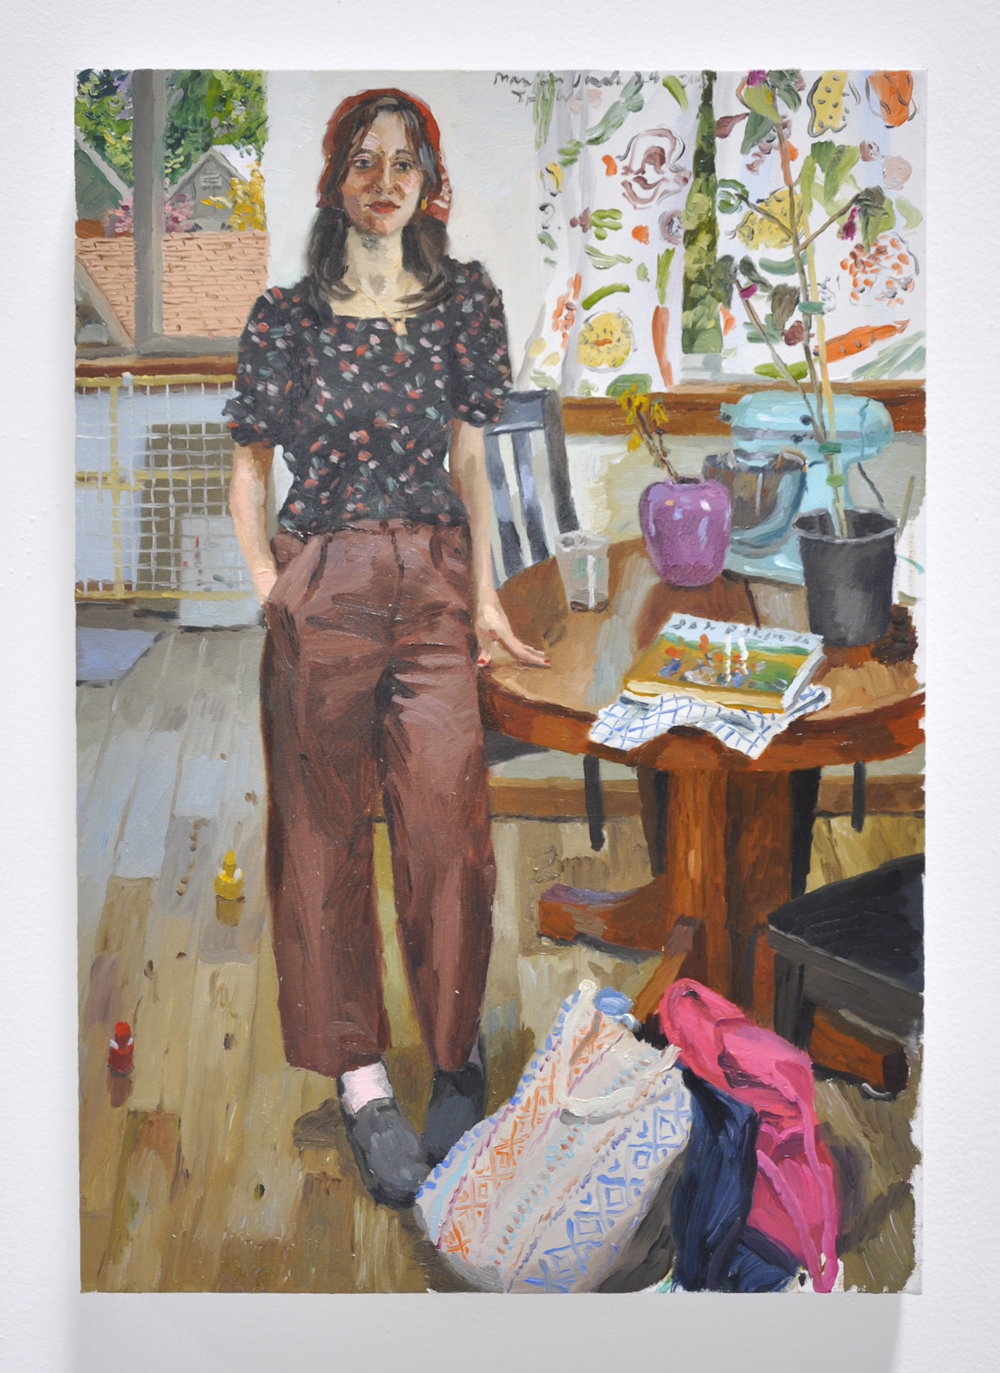 Terry Powers, Maryam in the Kitchen, 26 x 18in, Oil on linen, 2018